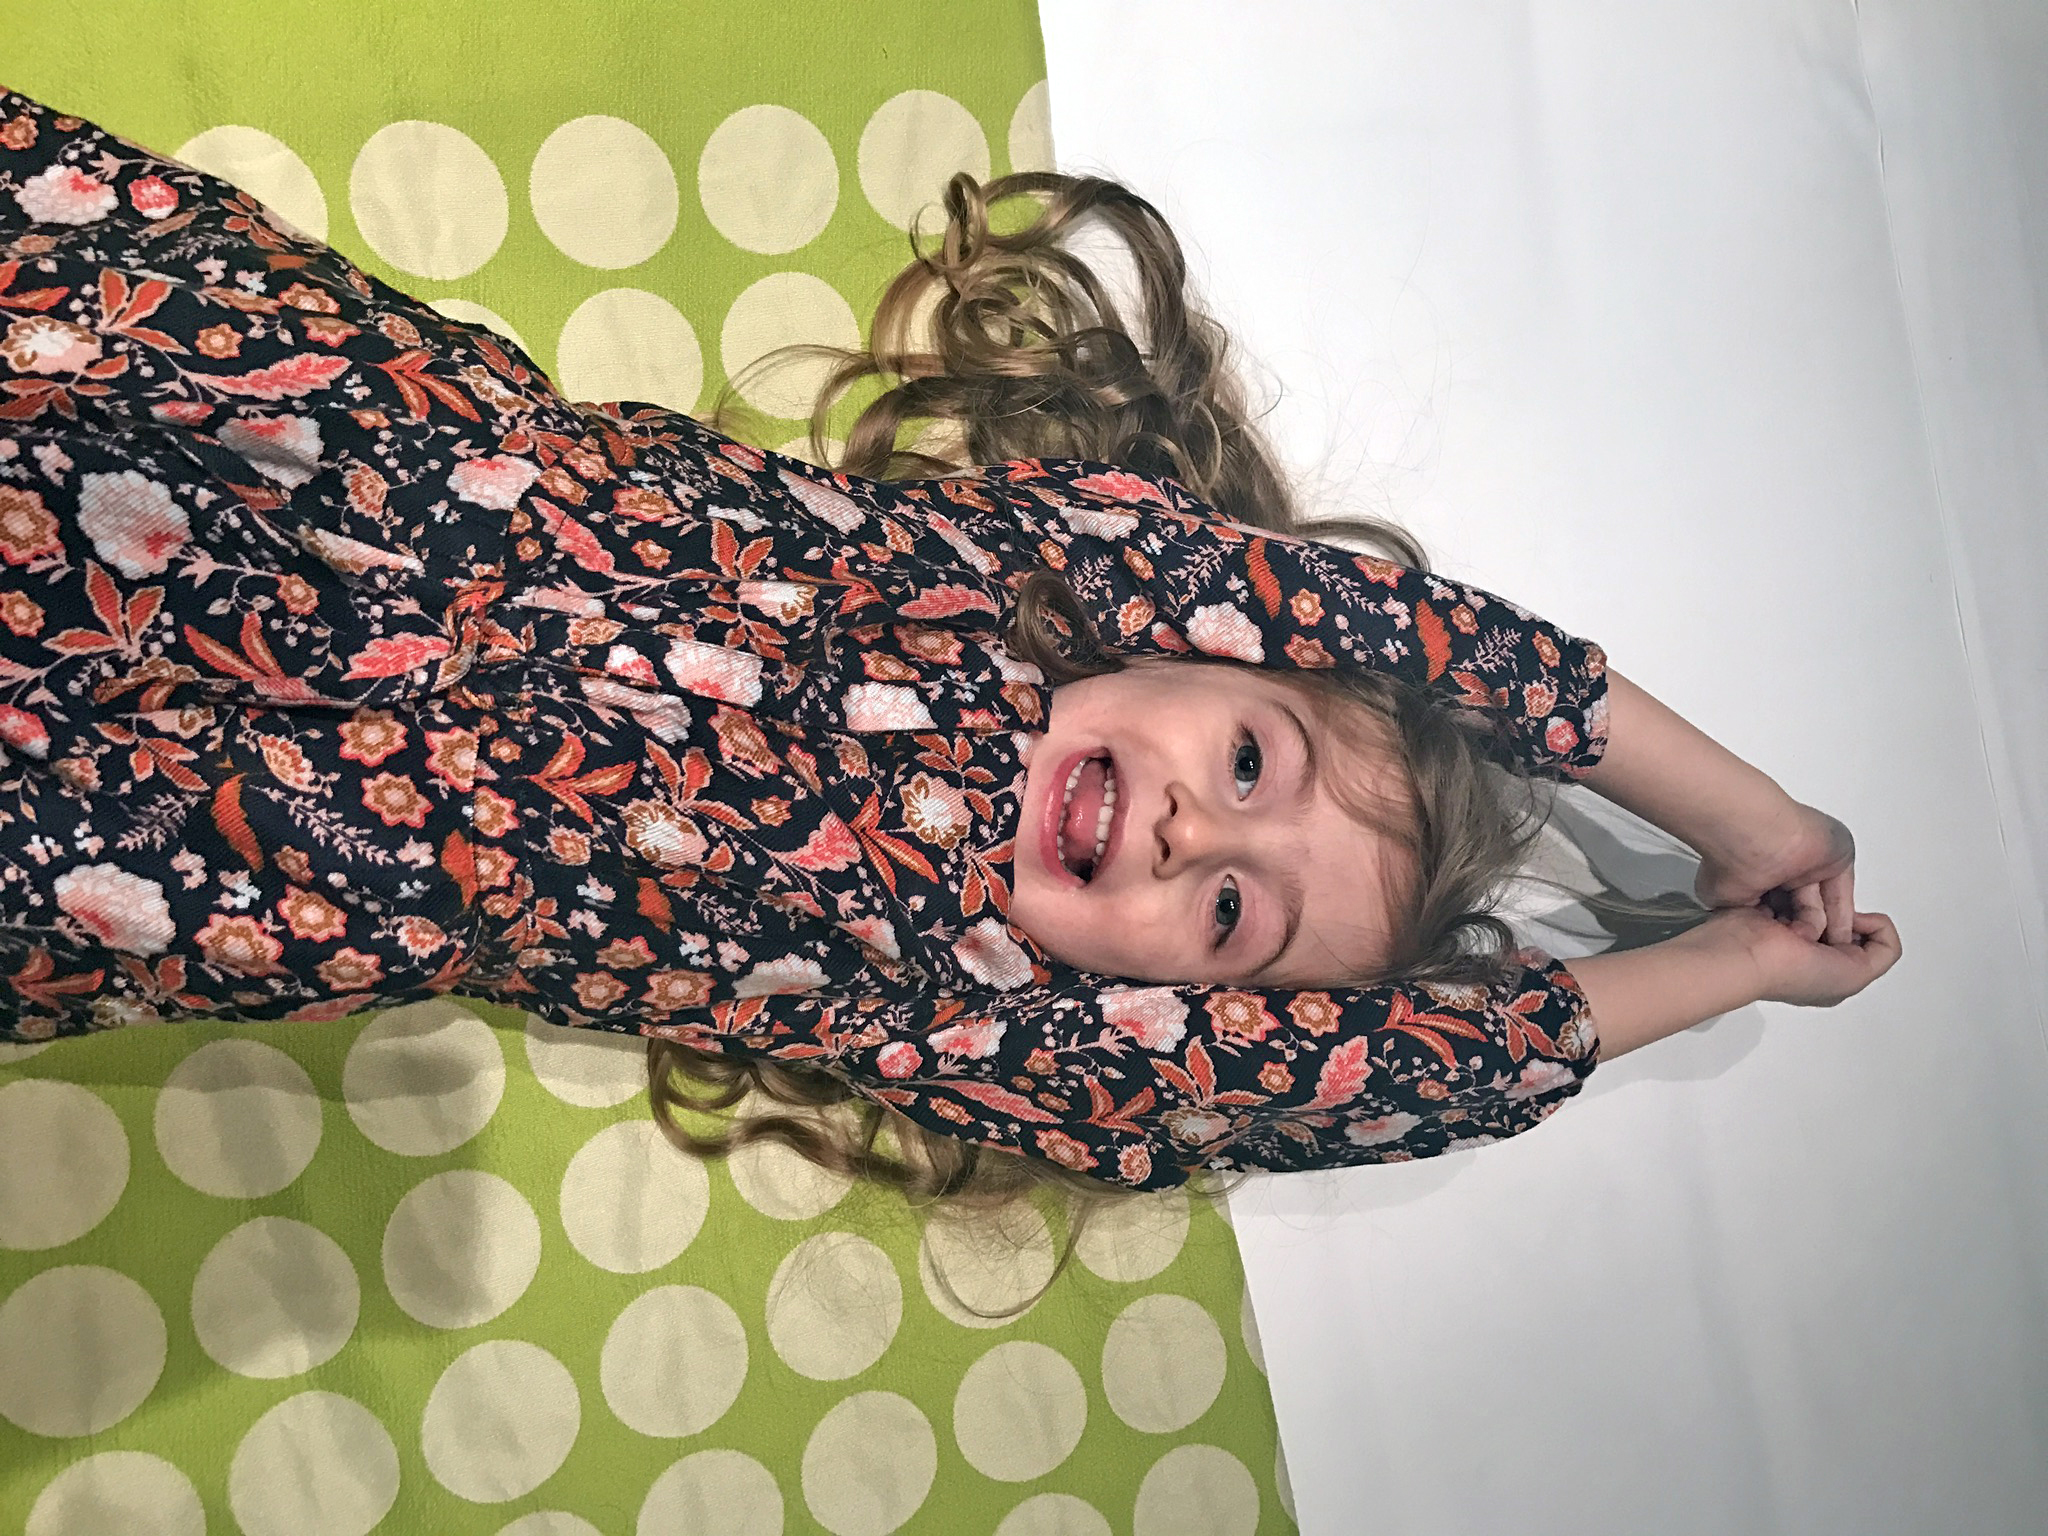 gaia masseroni piccoli blogger la redoute dress